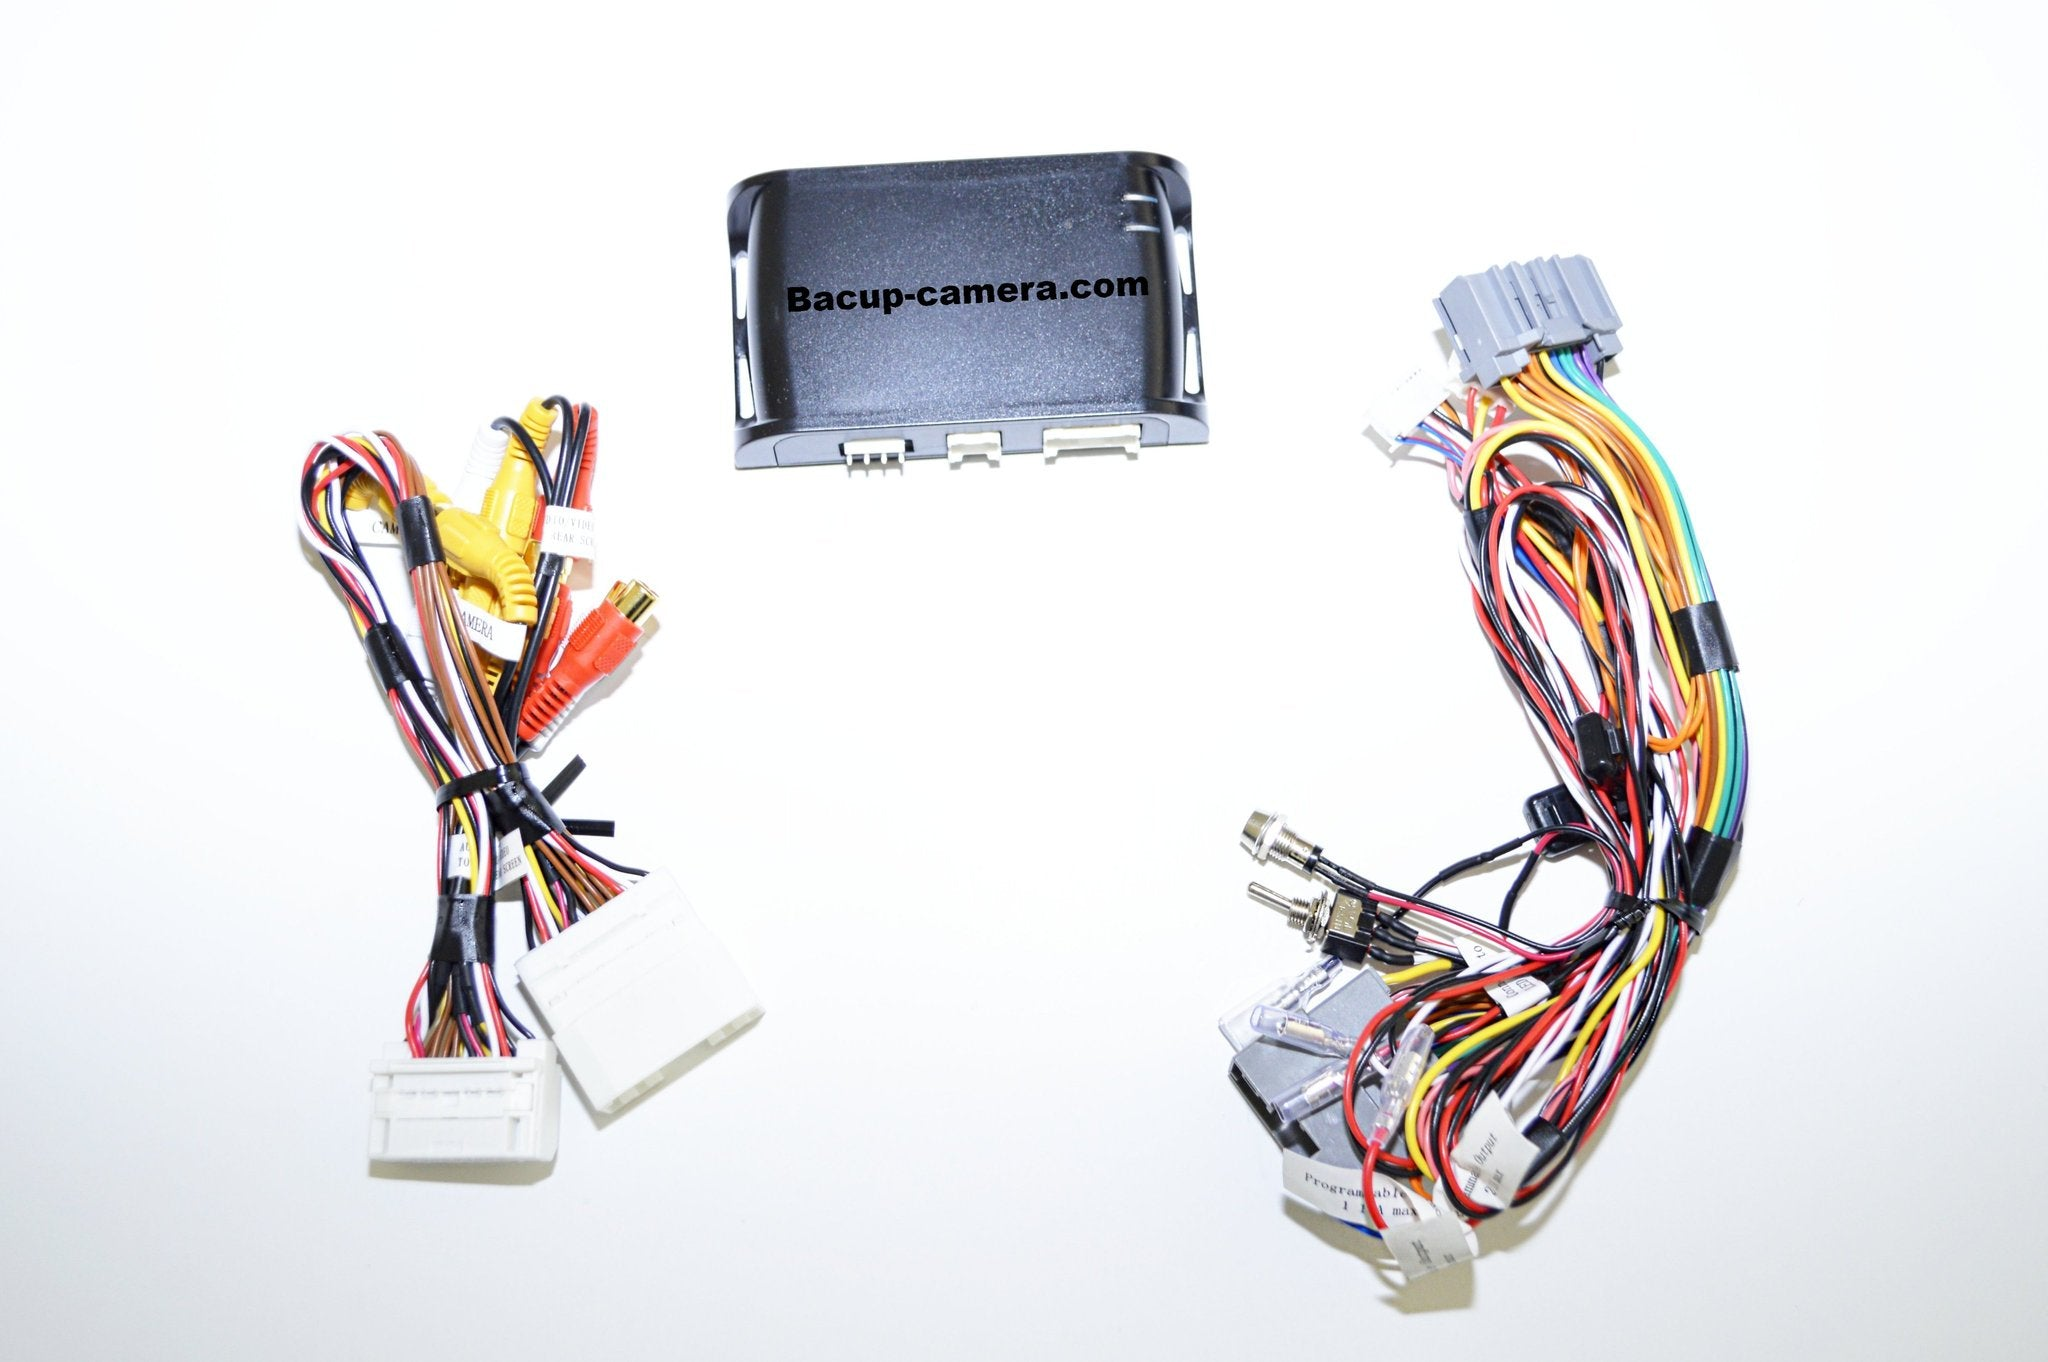 Oem Wiring Harness Connectors Jeep Wrangler from cdn.shopify.com